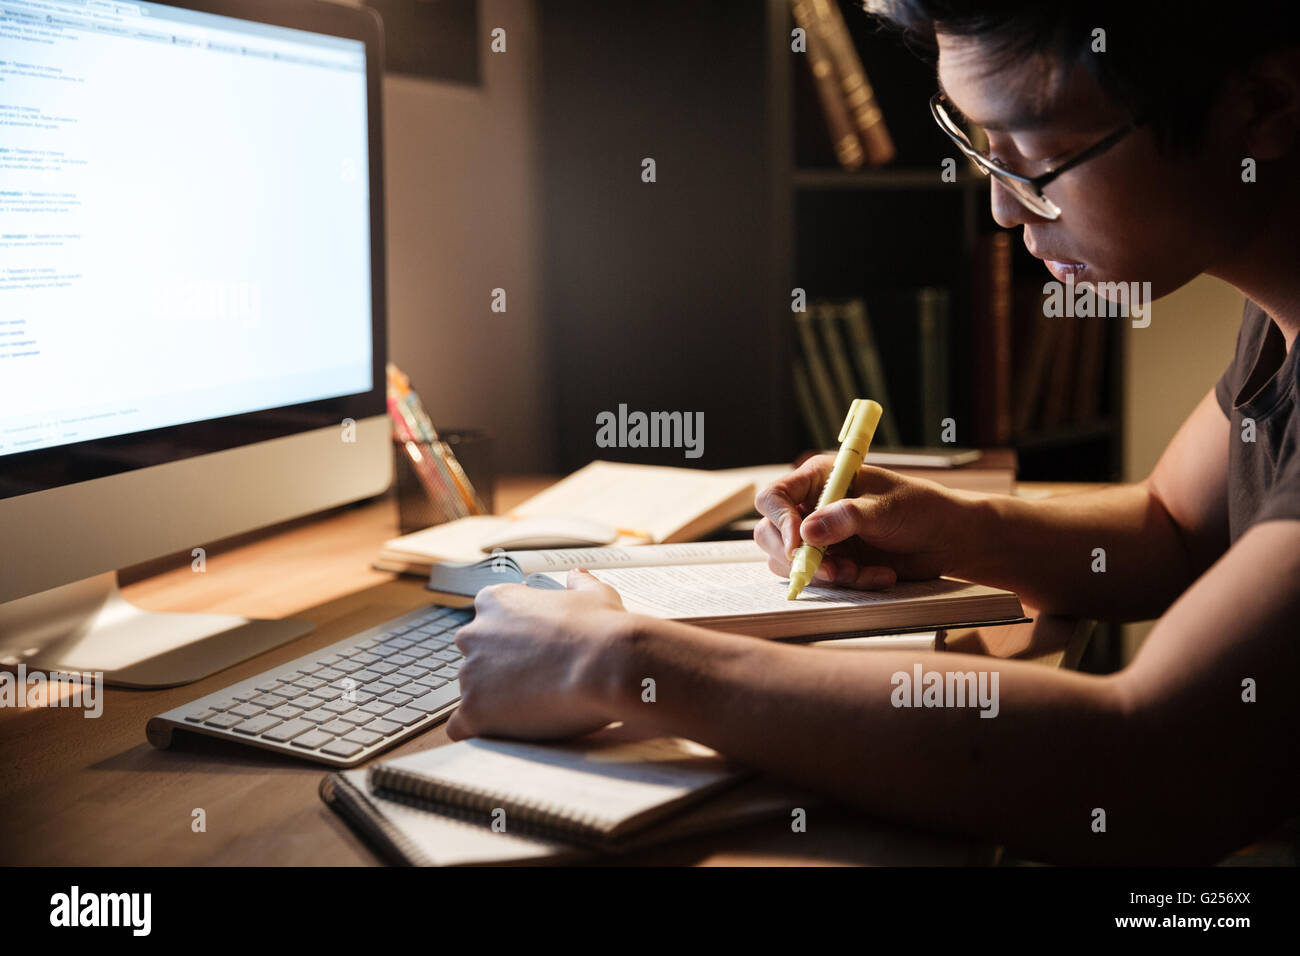 Serious asian young man studying with books and computer in dark room at home - Stock Image